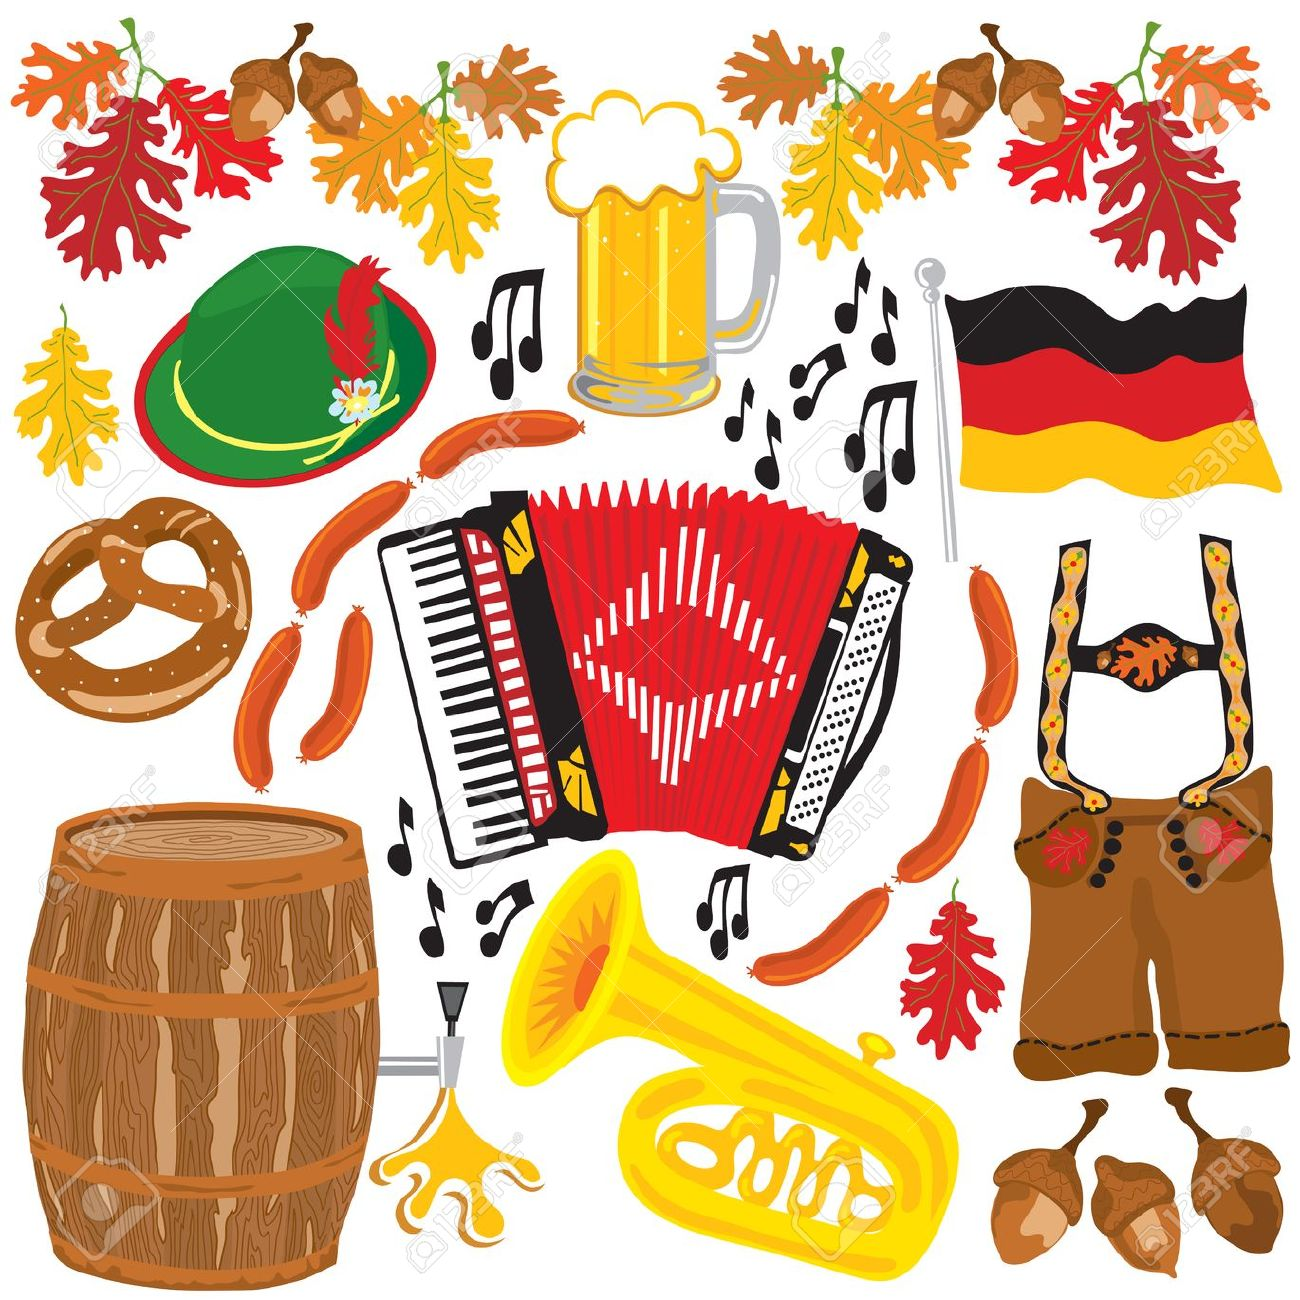 German clipart #15, Download drawings